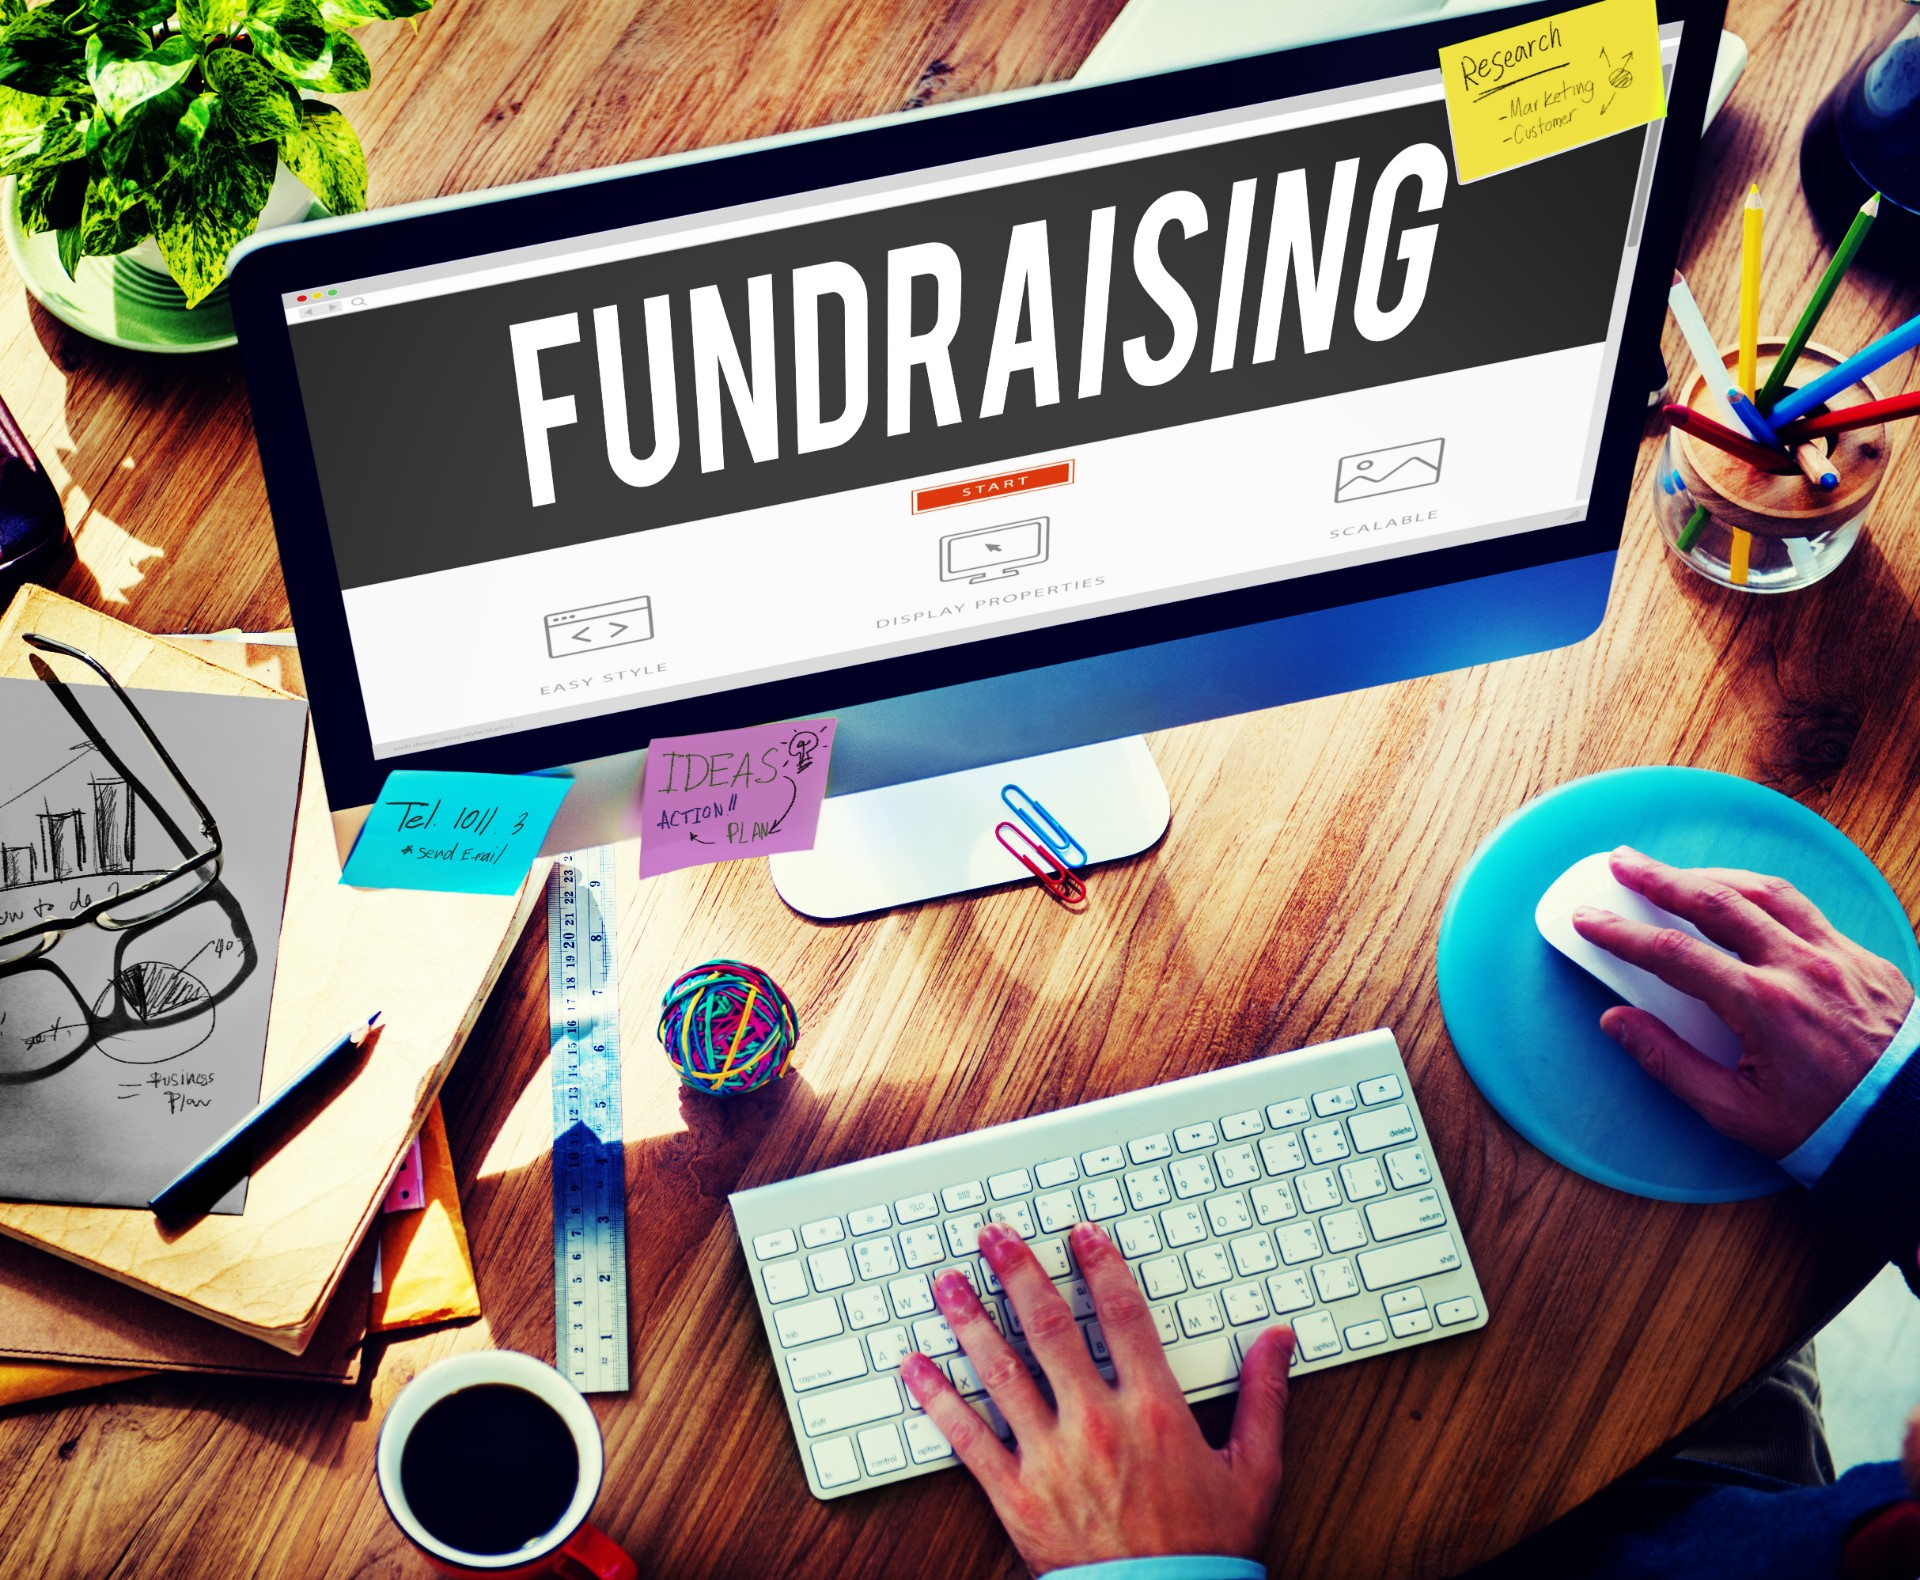 image of a computer screen with the word fundraising across it